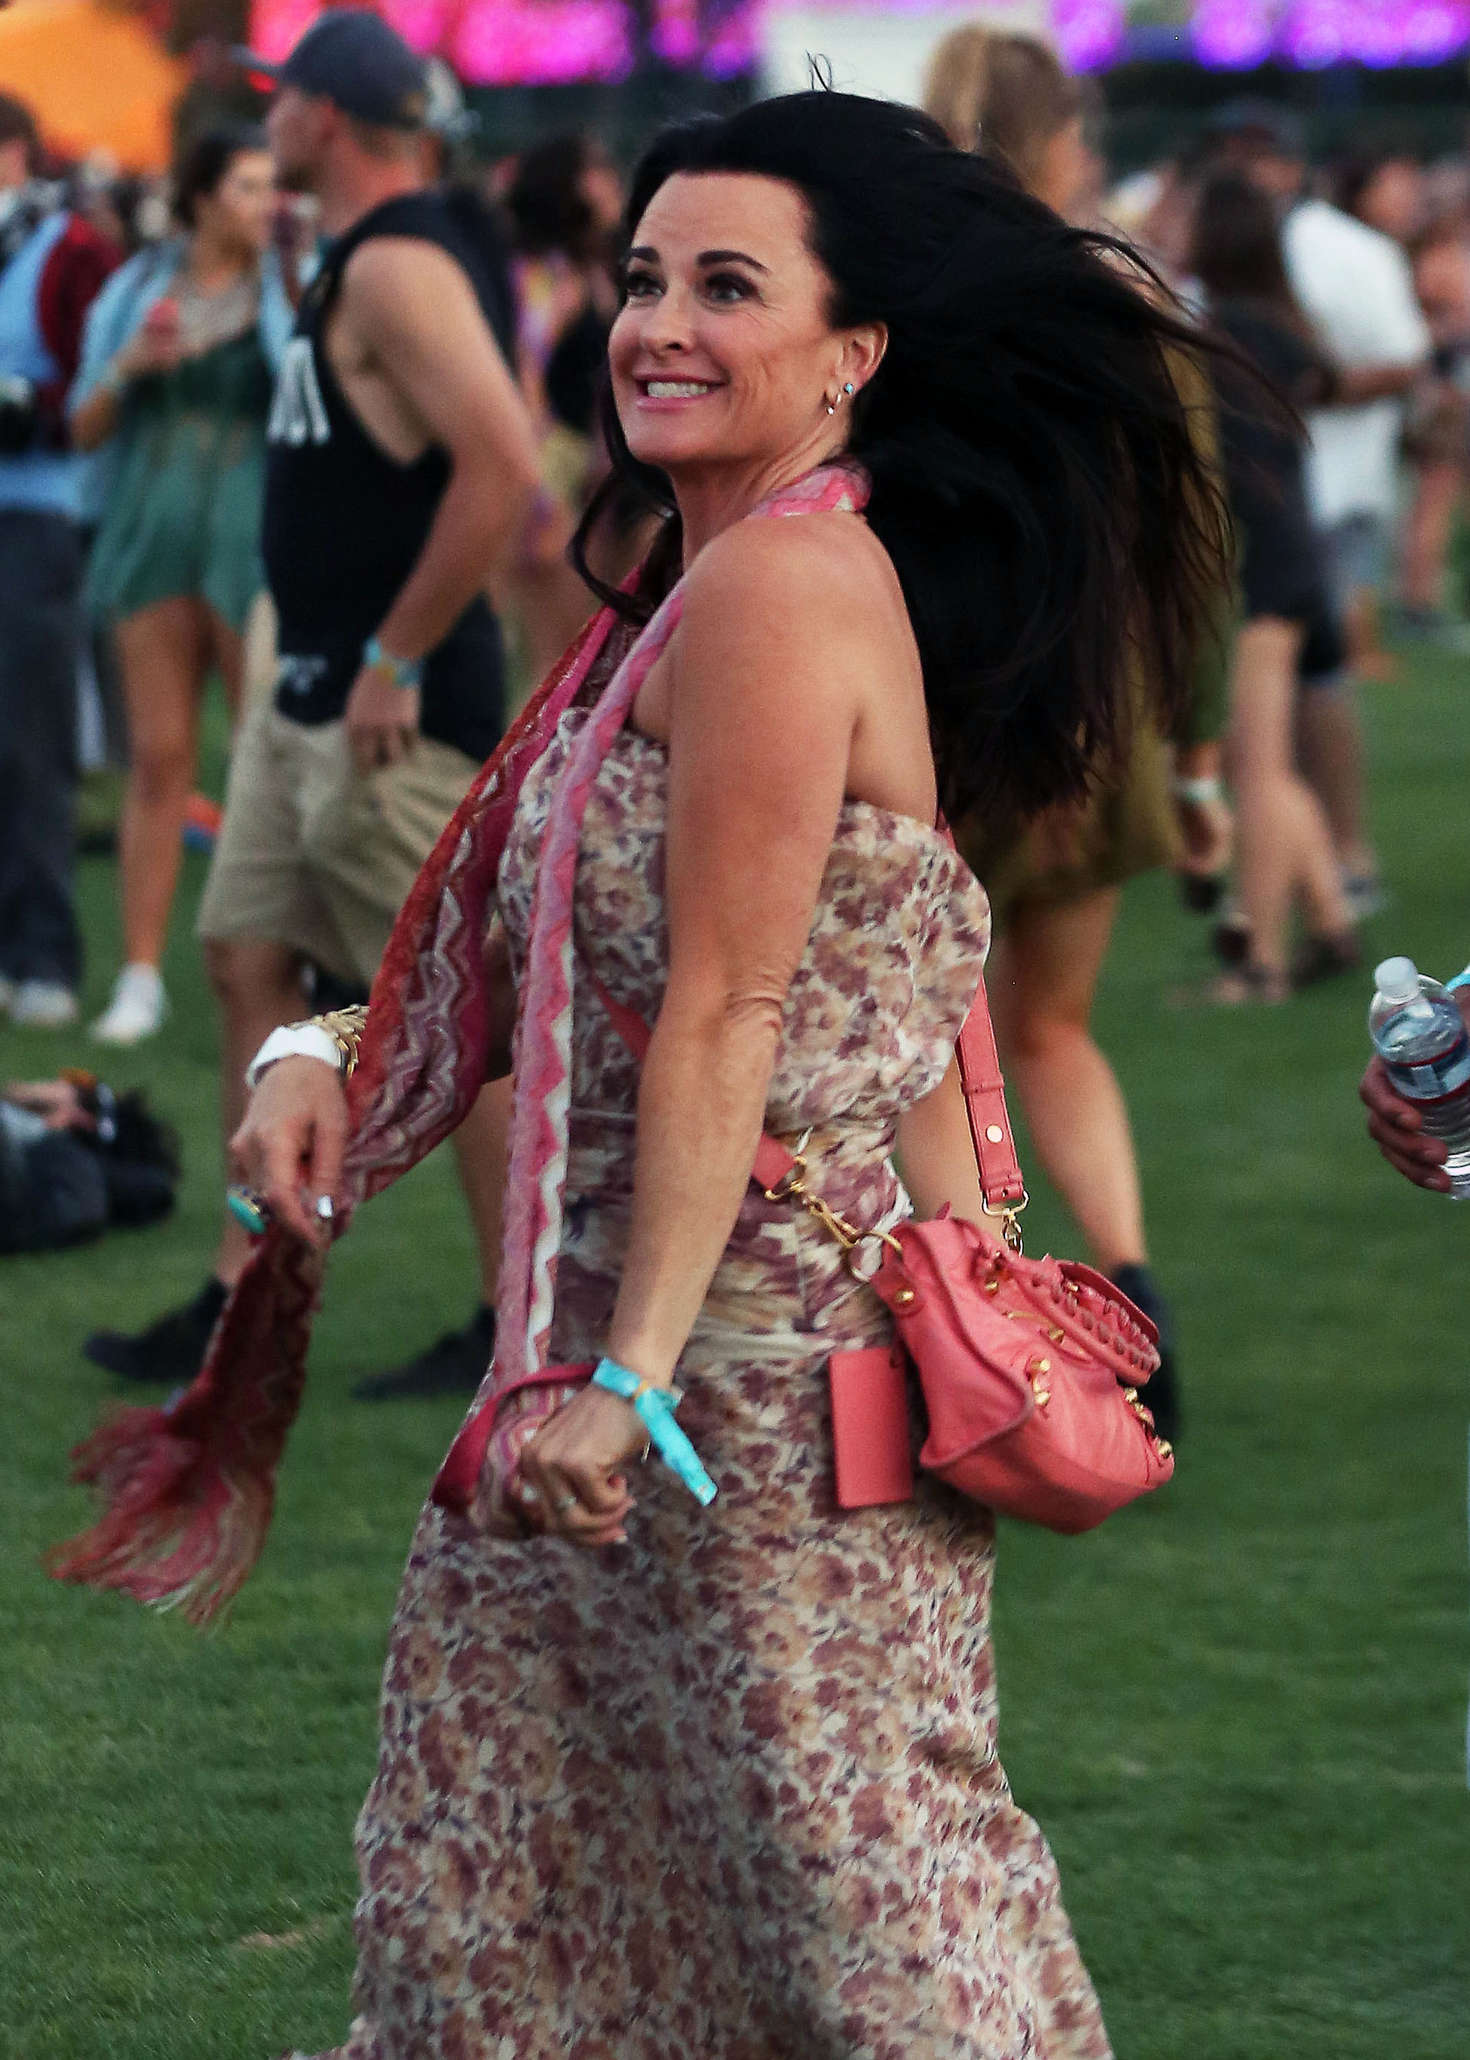 Kyle Richards Coachella Valley Music and Arts Festival in Indio